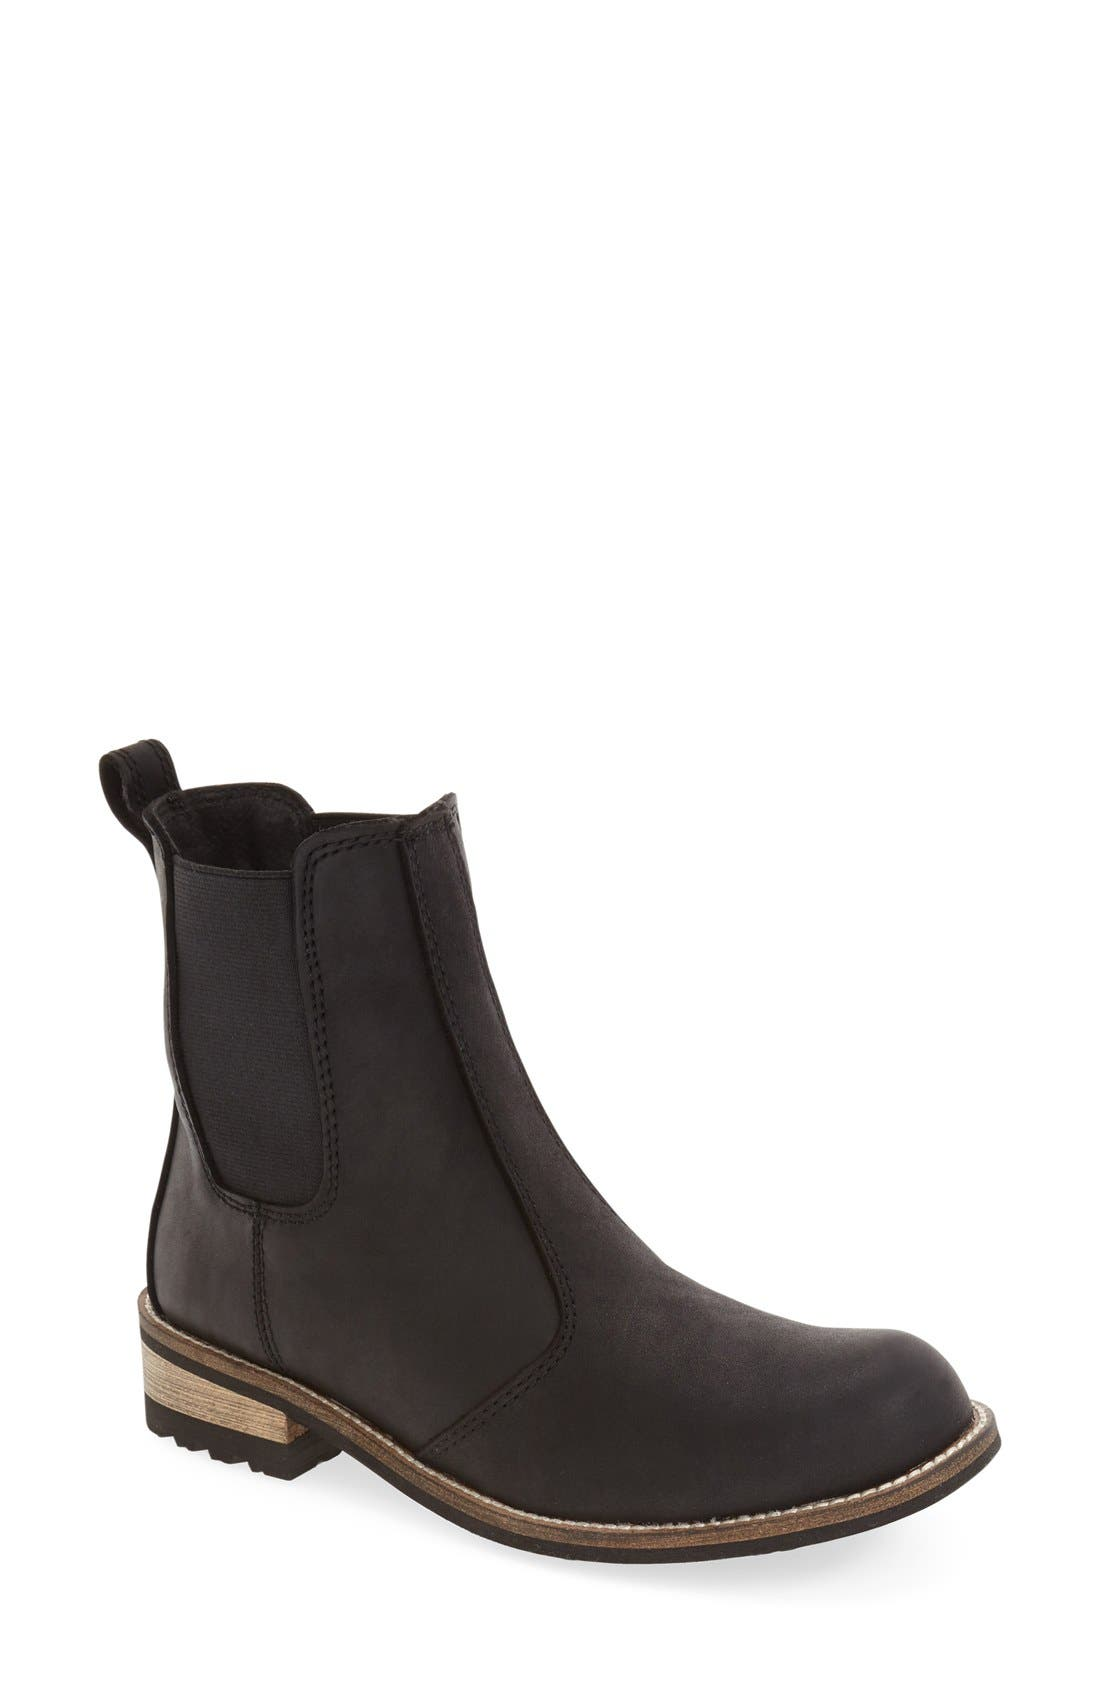 'Alma' Waterproof Chelsea Boot,                             Main thumbnail 1, color,                             BLACK LEATHER